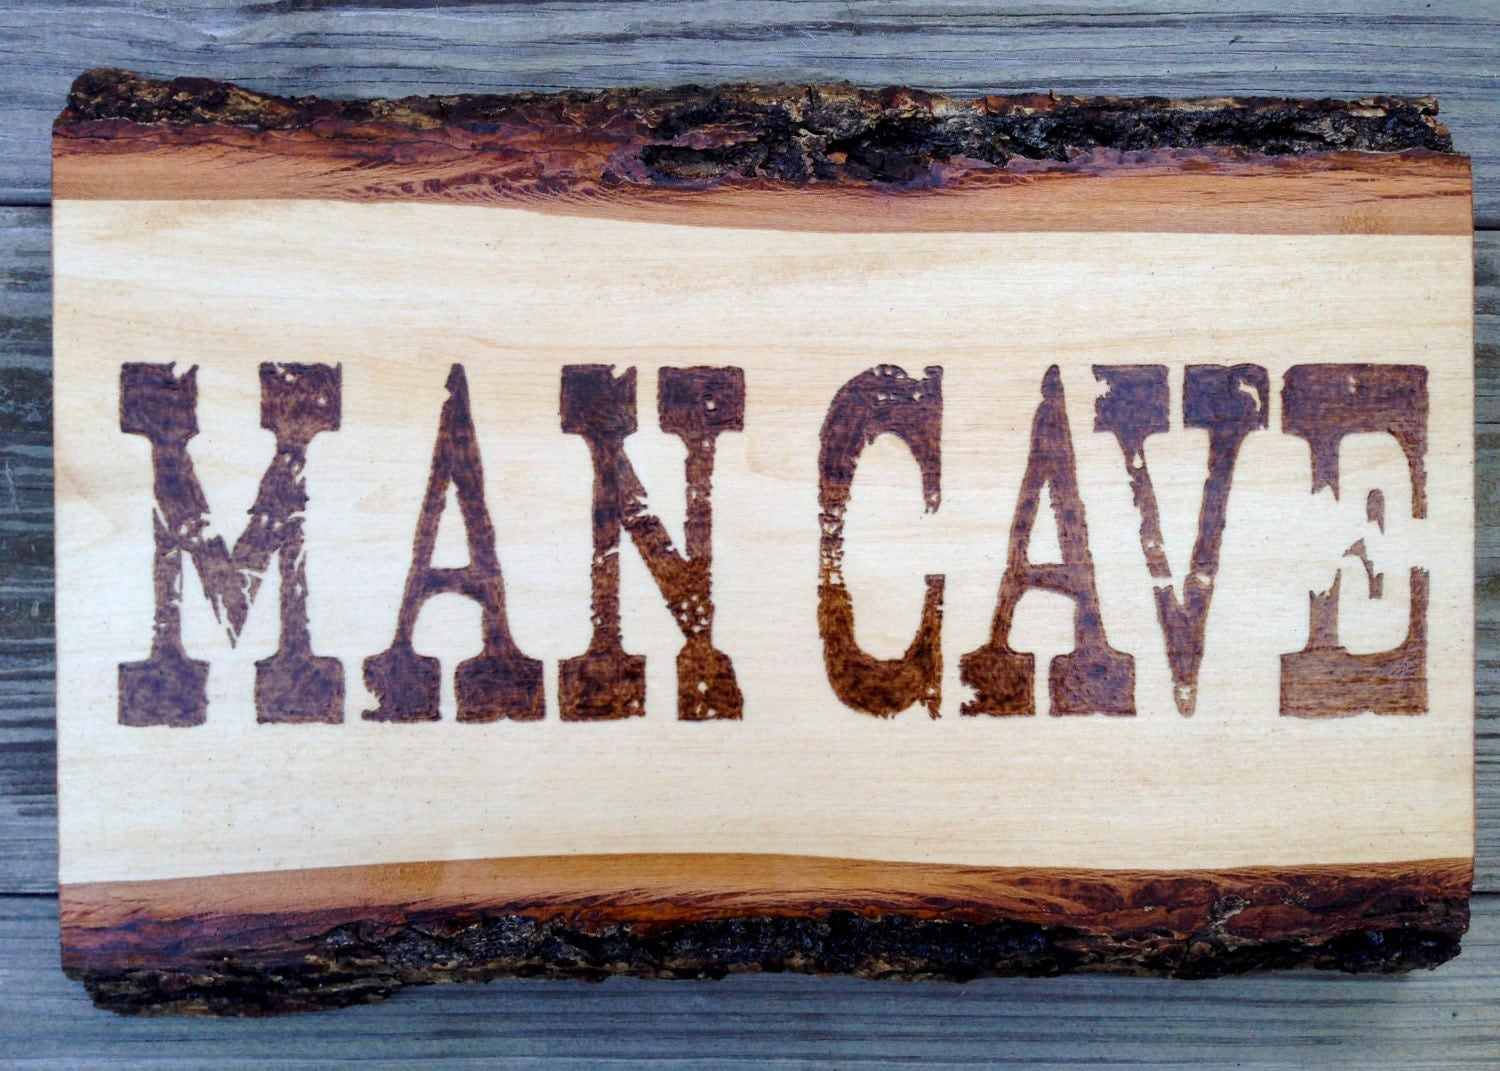 Man Cave Signs Wooden : Man cave rustic wood burned sign pyrography by bluemarket